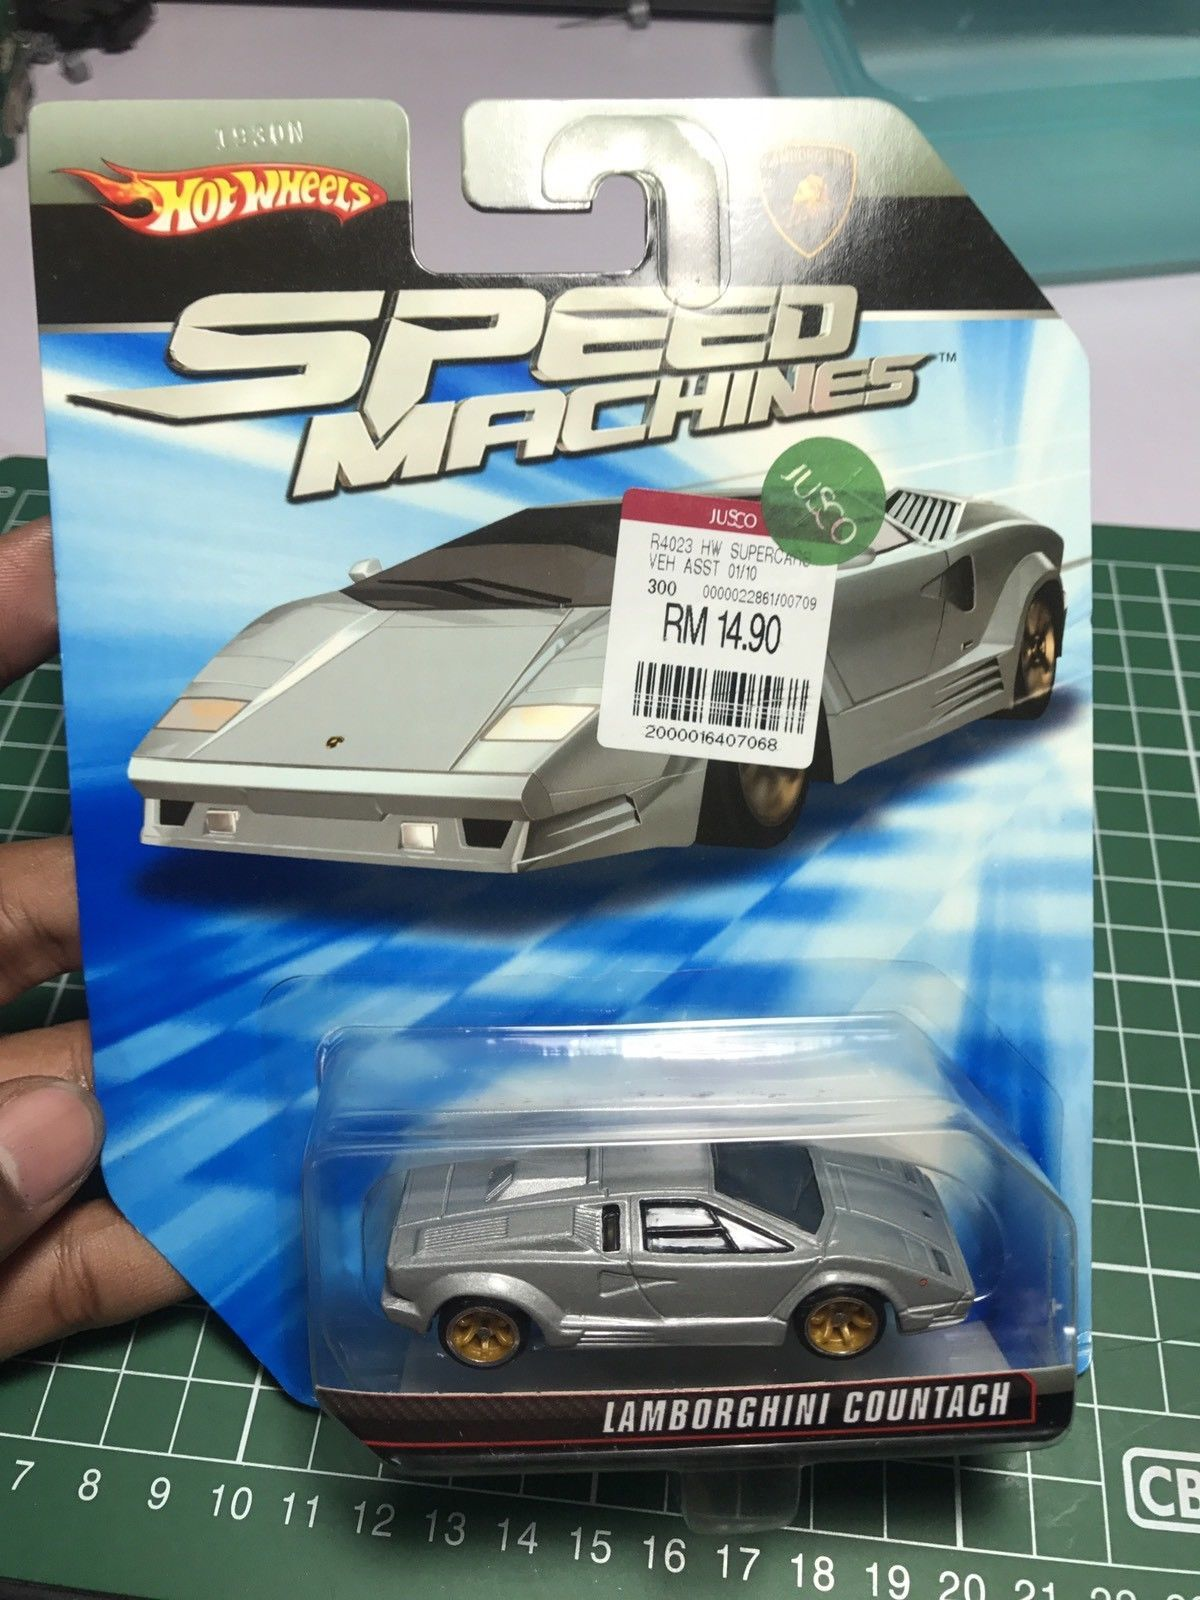 a44bc77ceefac156244953817fad10db Mesmerizing Hot Wheels Speed Machines Lamborghini Countach Cars Trend